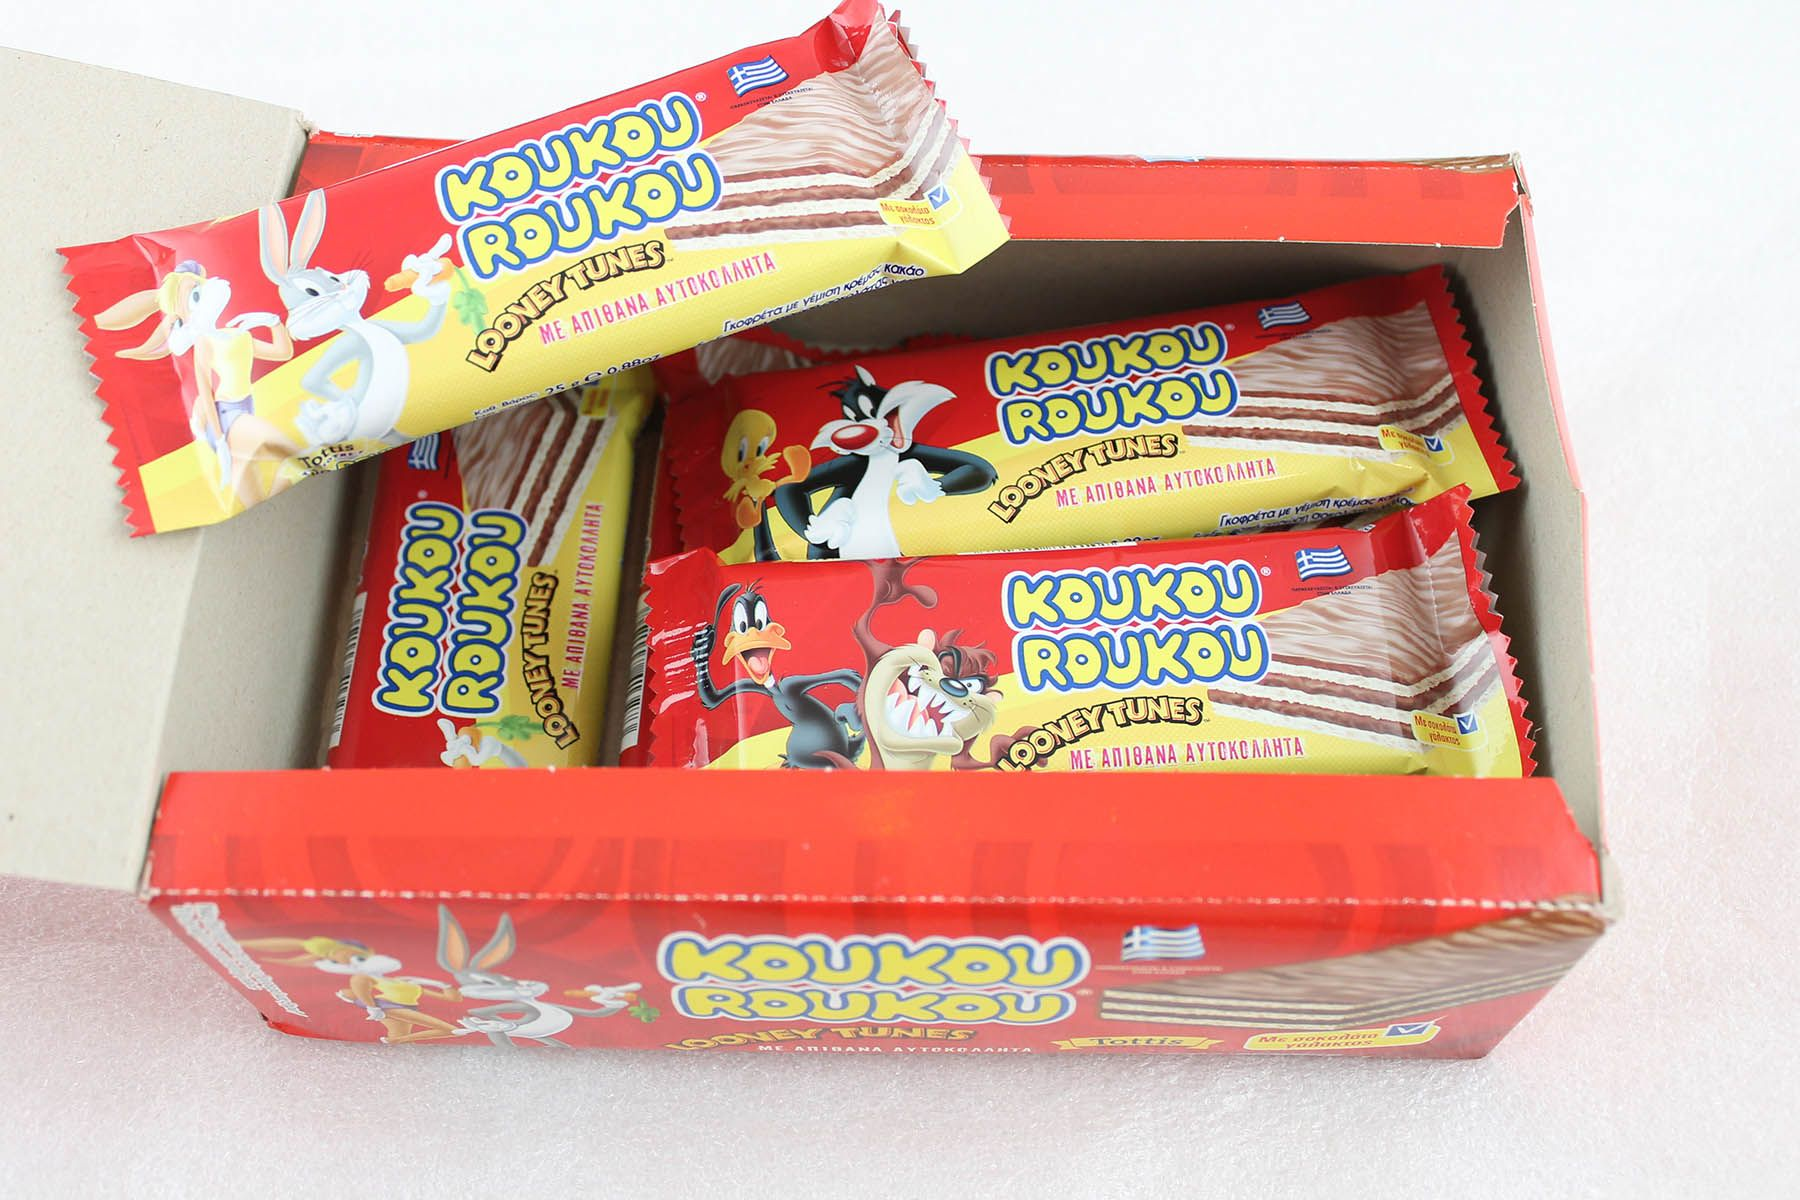 Looney Tunes food and promotions wafers